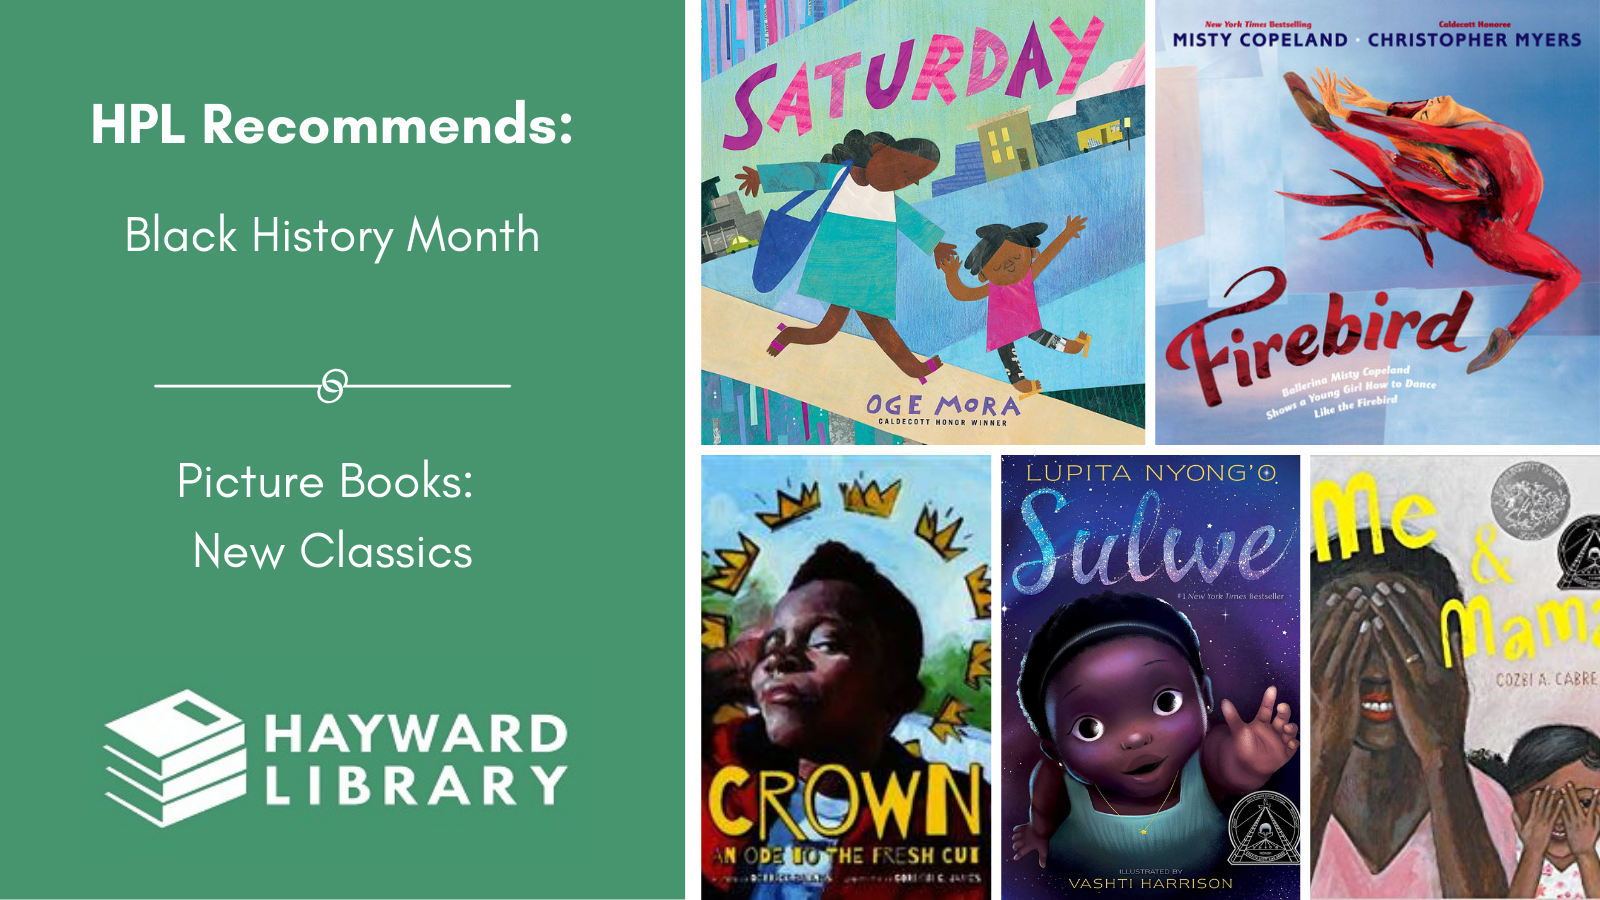 Collage of book covers with a green block on left side that says HPL Recommends, Black History Month, Picture Books: New Classics in white text, with Hayward Library logo below it.